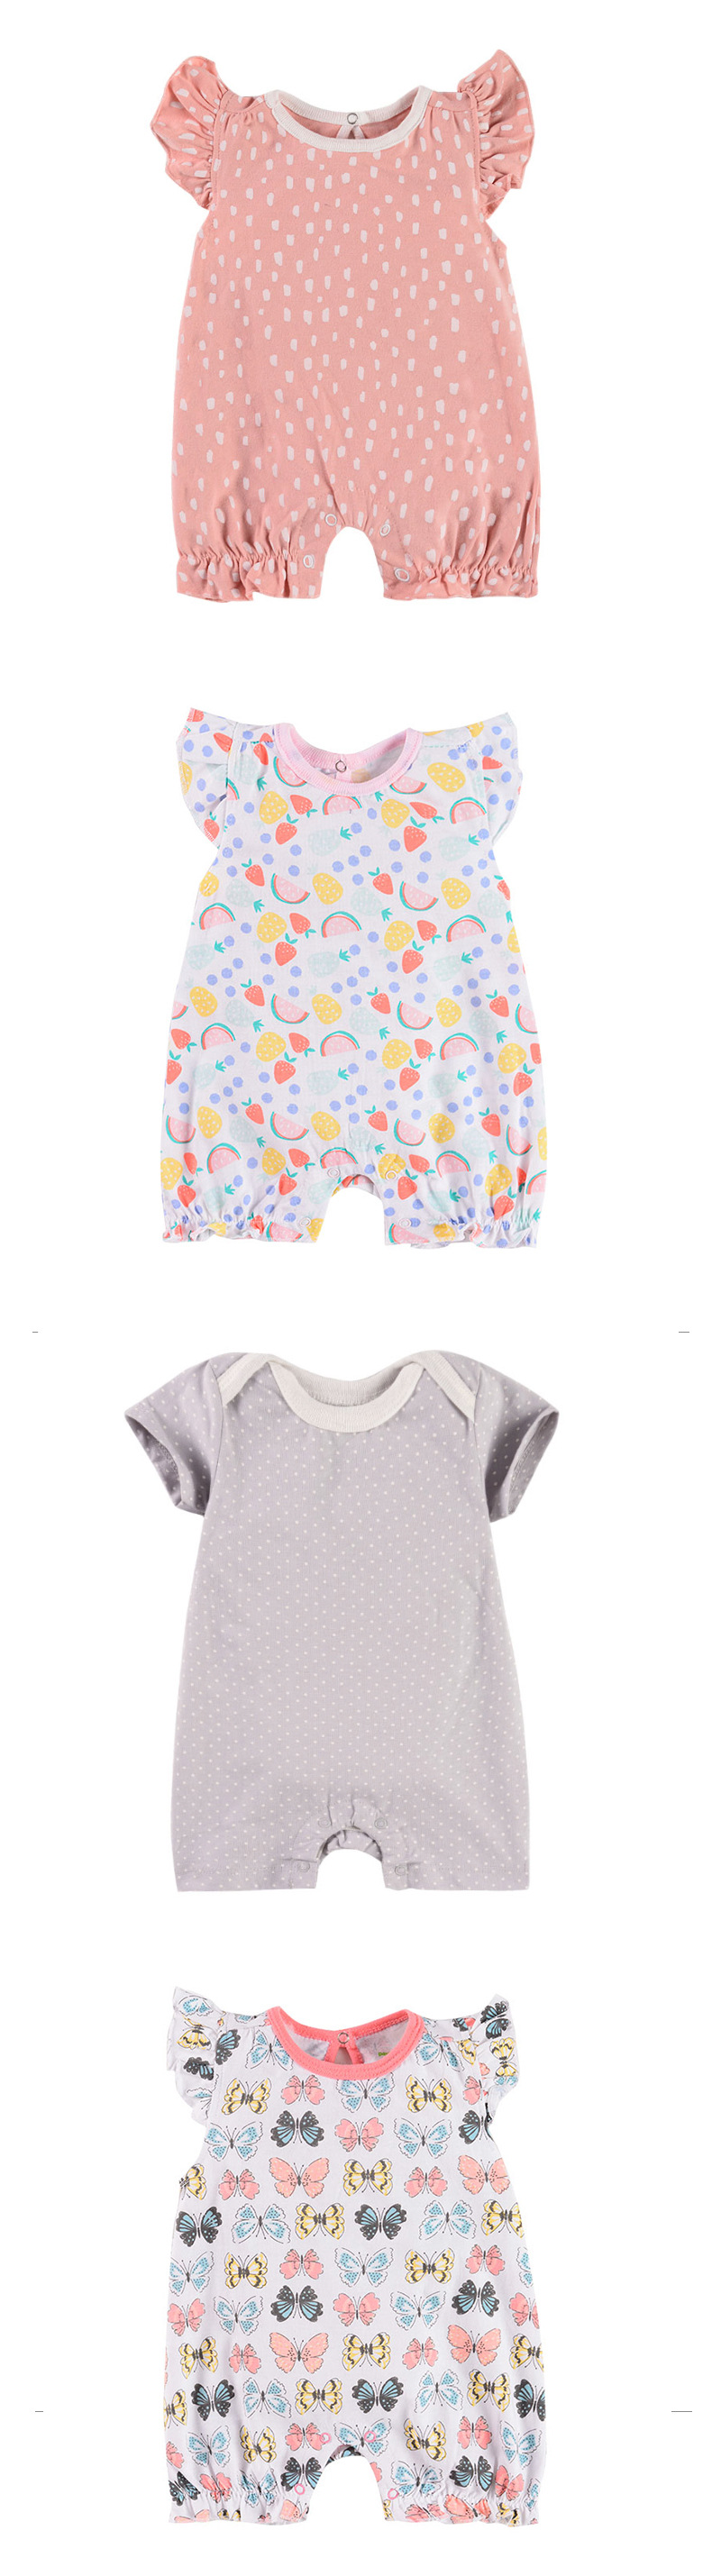 Cheap Price Wholesale Quality Summer Baby Girls Clothes Sets Cute 100% Cotton Sleeveless Baby Girls Rompers With Hairband